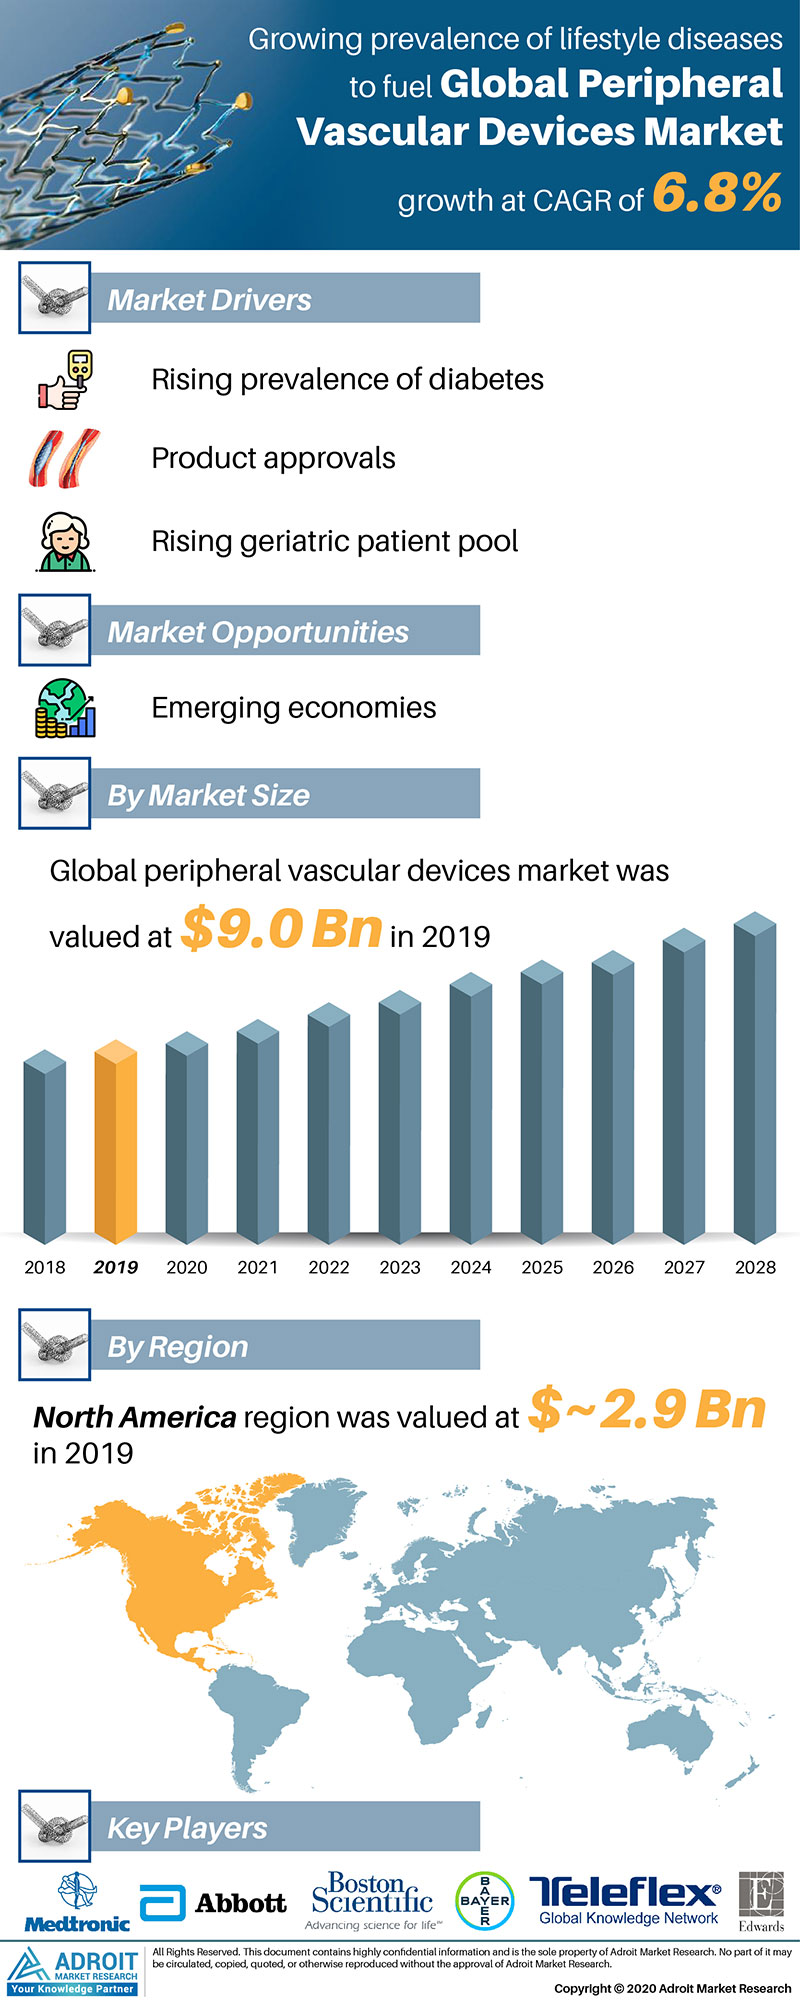 Peripheral Vascular Devices Market Size 2017 By Application, Product, Region and Forecast 2019 to 2025